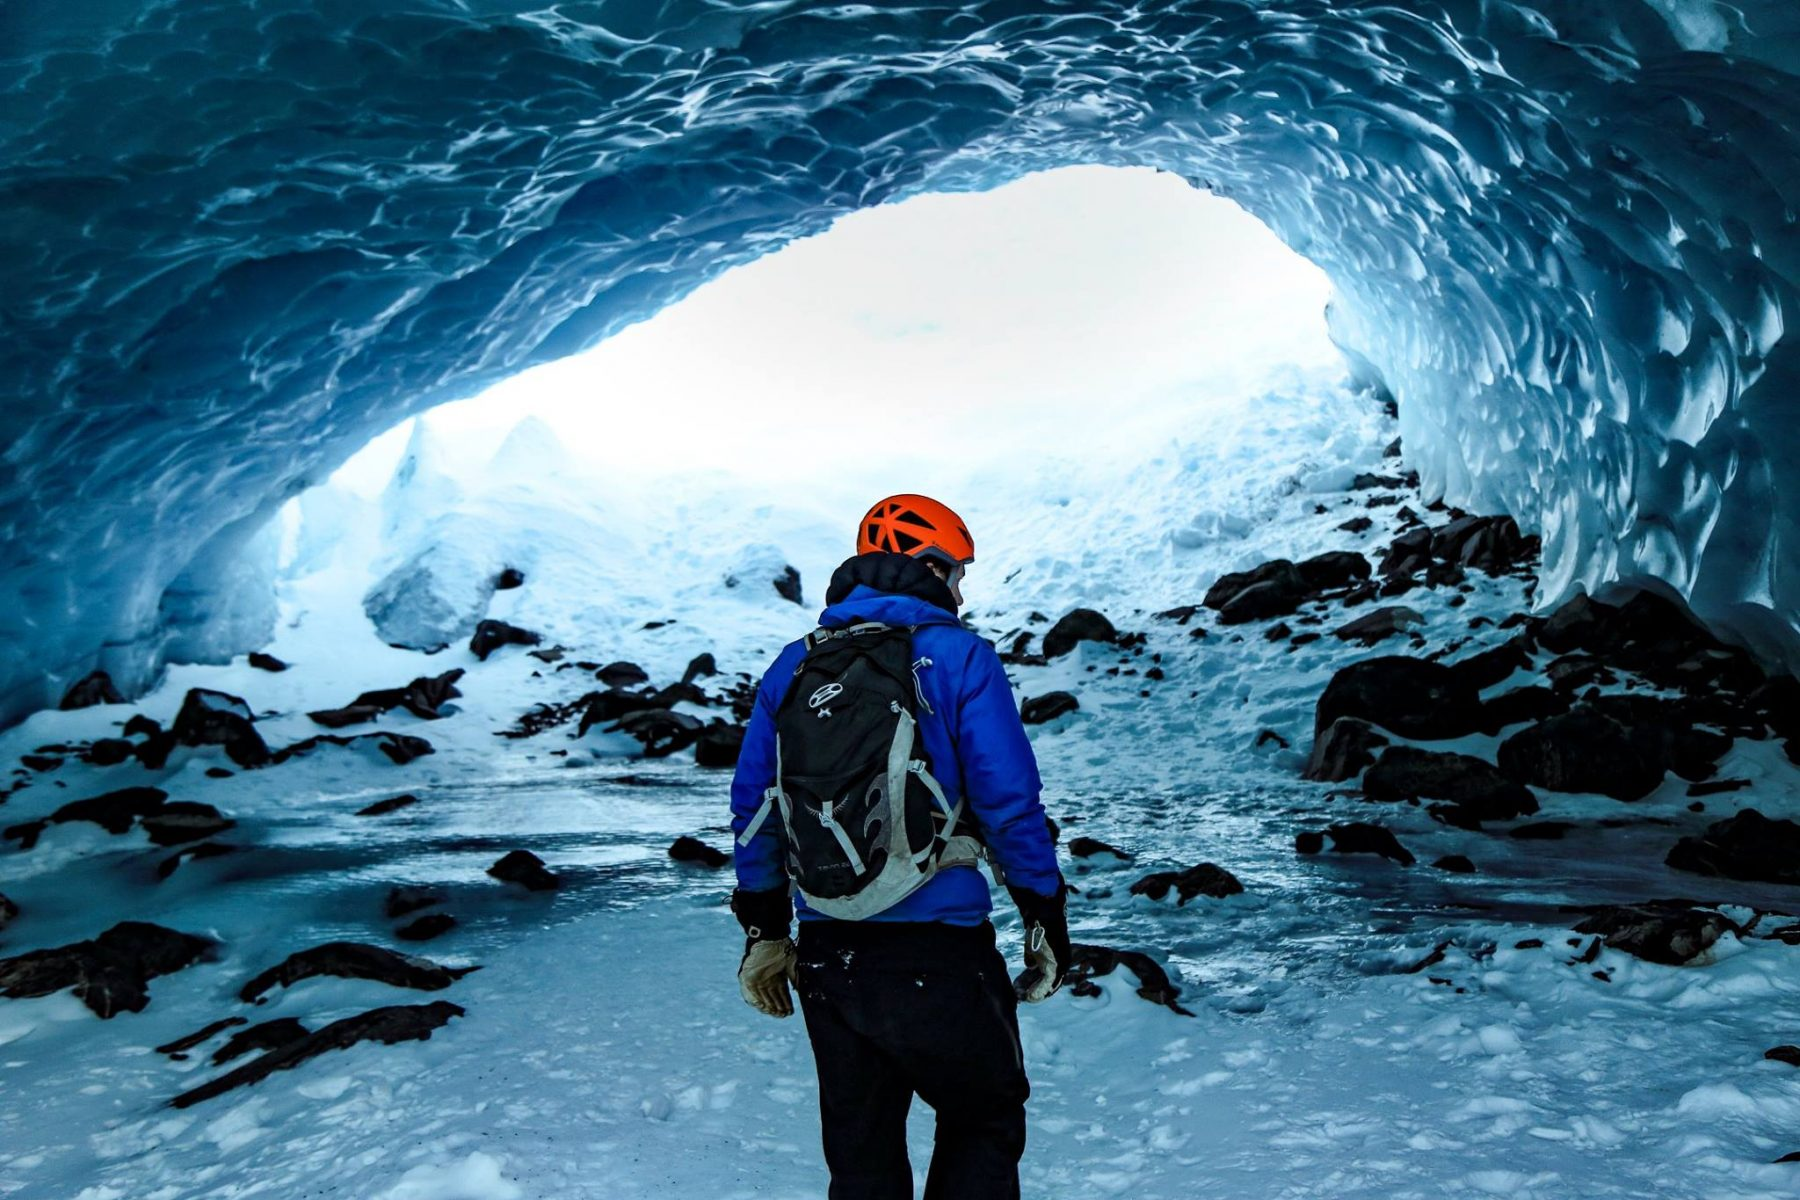 Osprey Talon 22 backpack in an ice cave